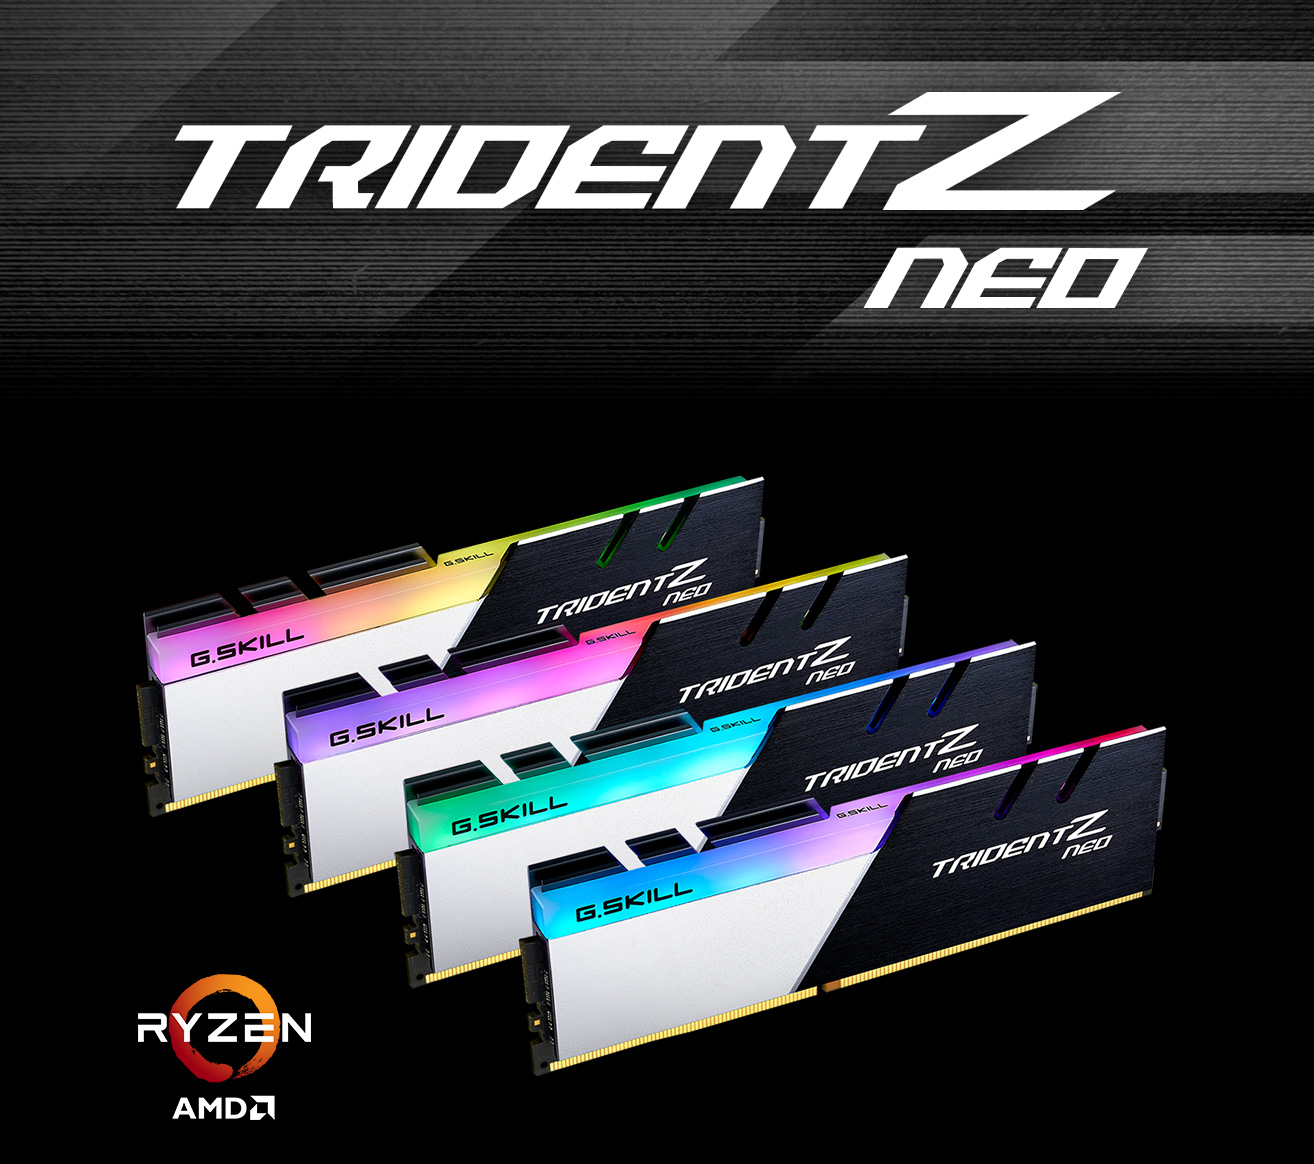 G.Skill TRIDENT Z NEO Banner with 4 Sticks of Memory Angled Down to the Right, Next to the Ryzen and AMD Logo